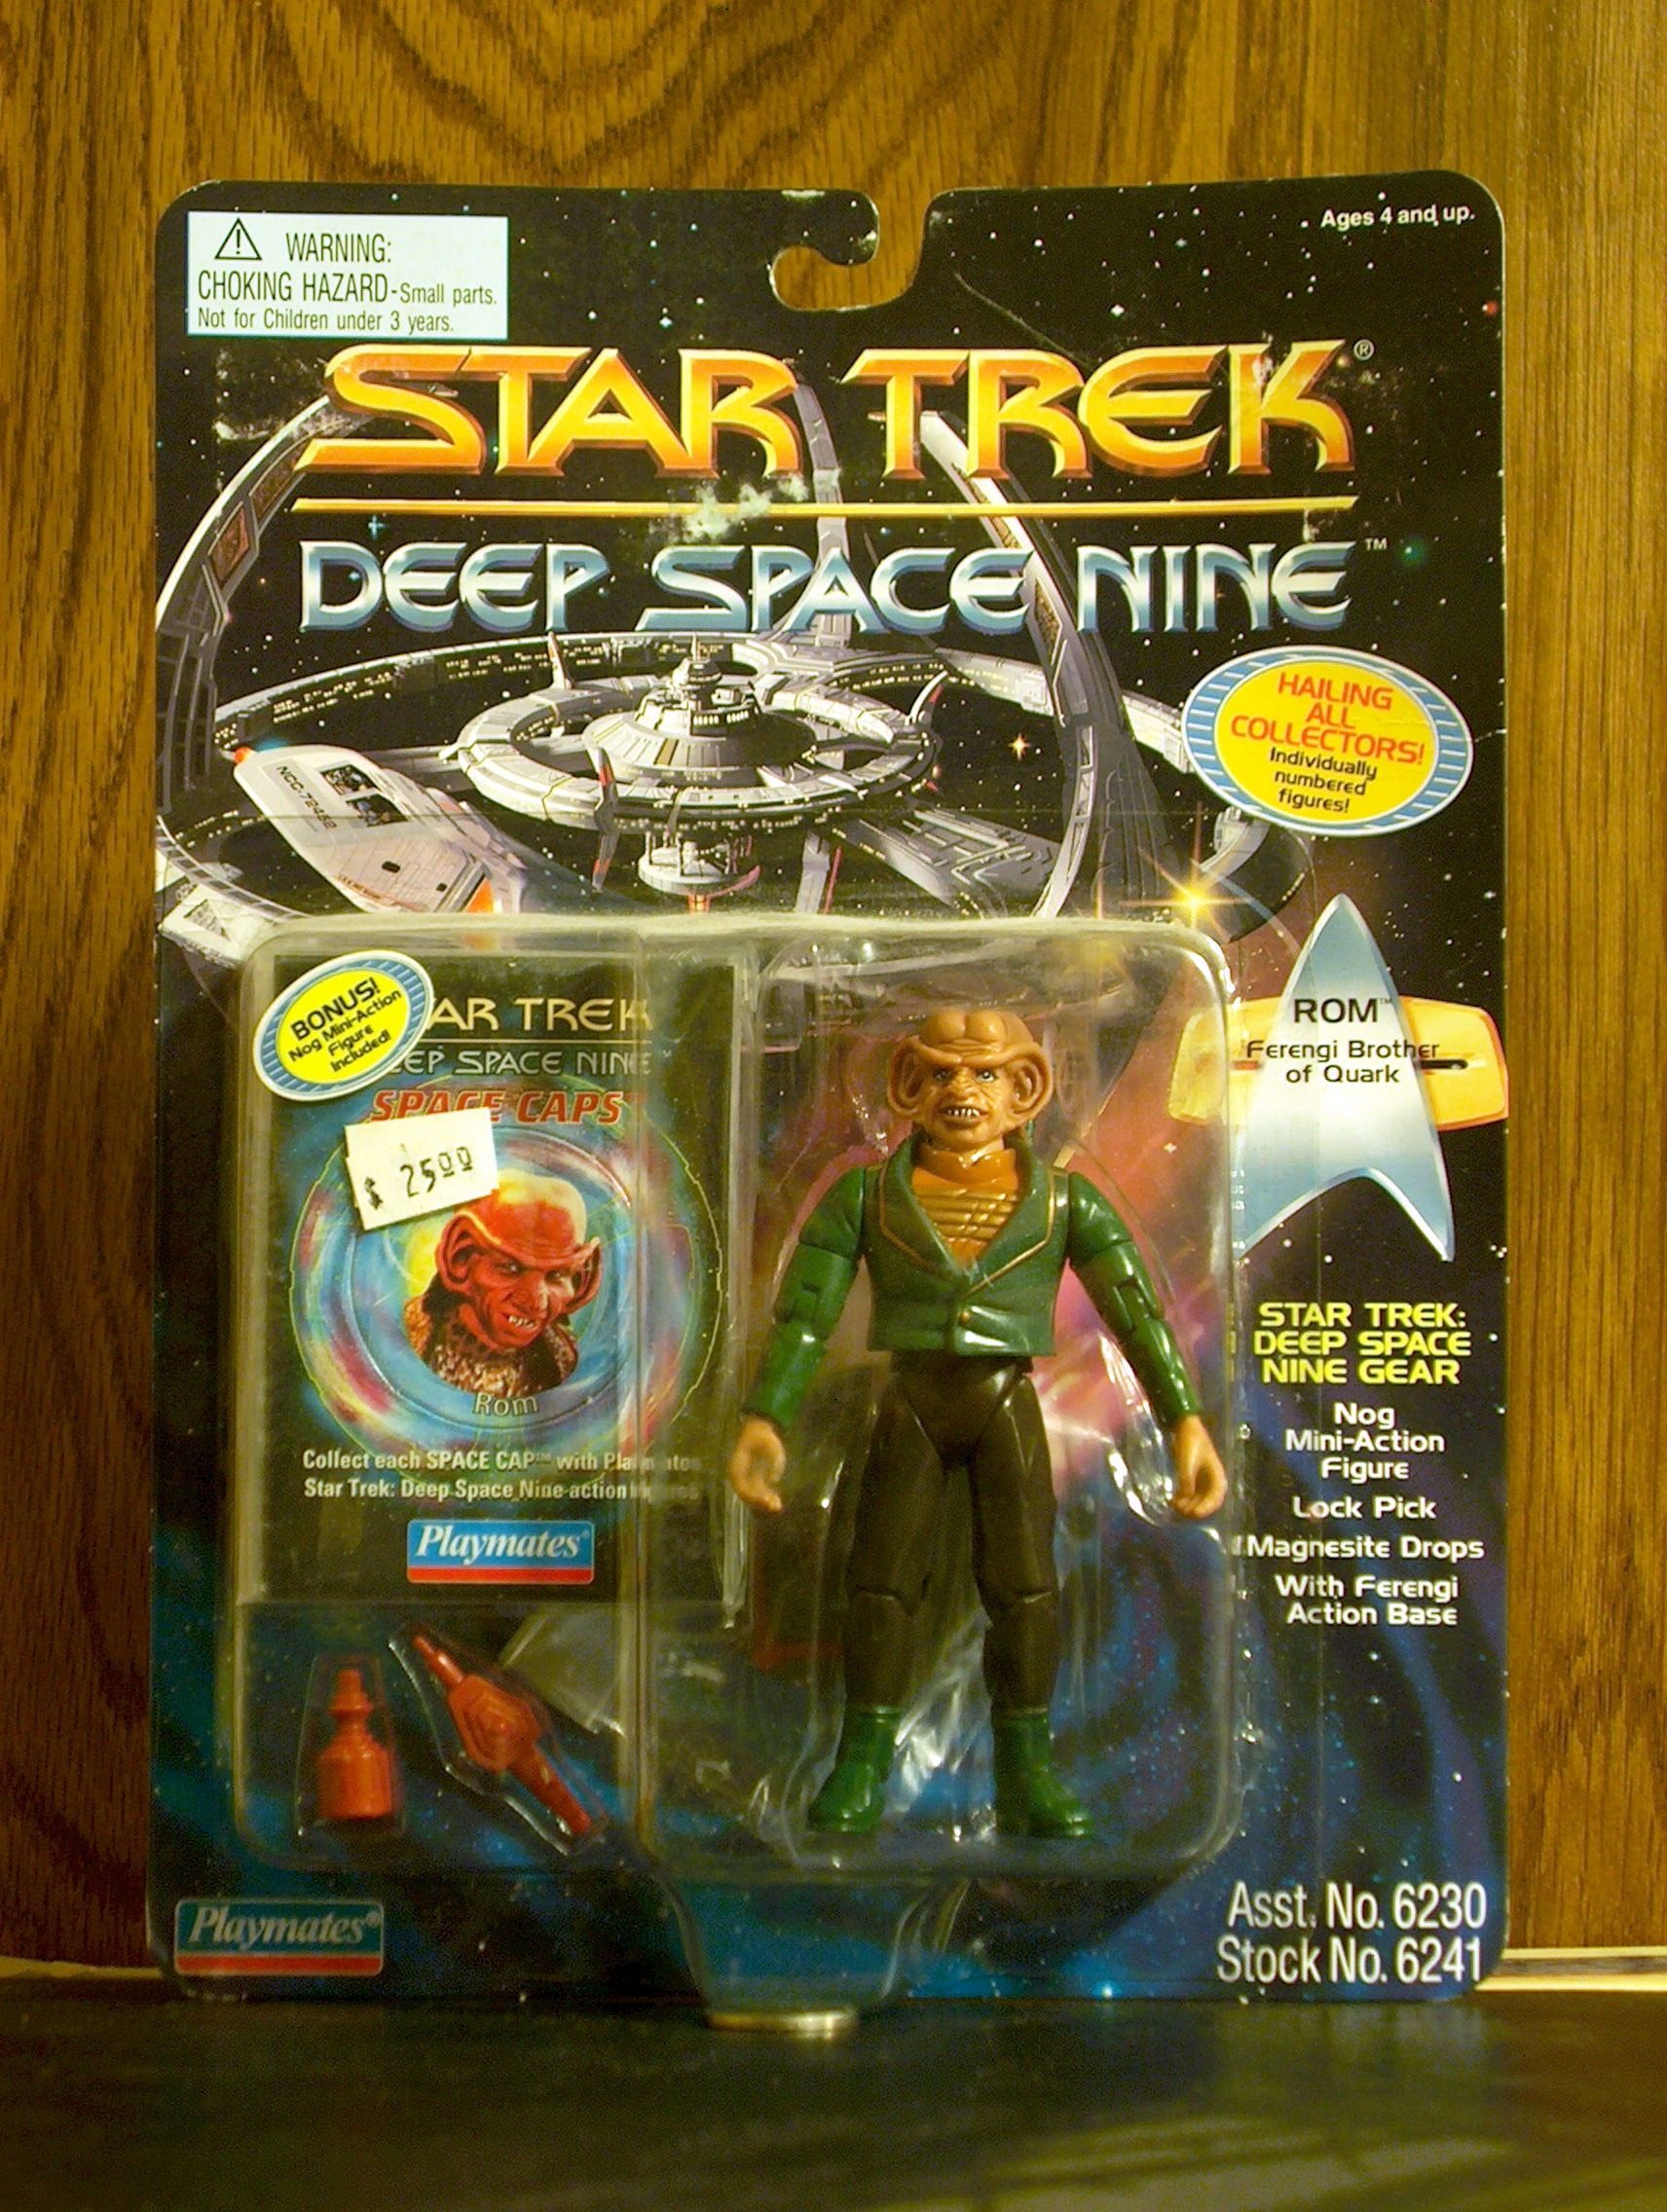 Rom Ferengi Brother of Quark